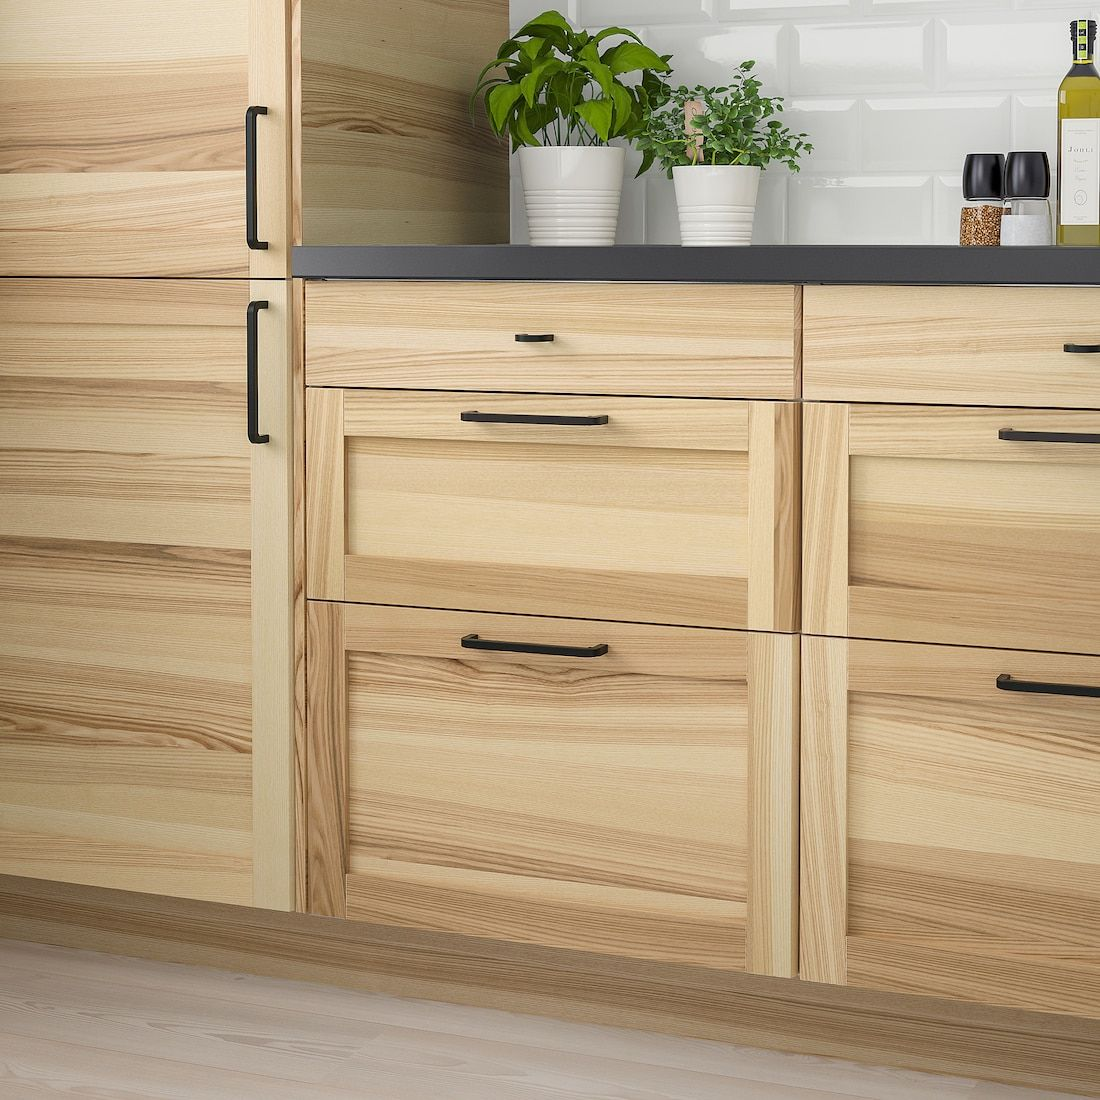 Torhamn Drawer Front Natural Ash 36x5 Ikea In 2020 Natural Wood Kitchen Cabinets Natural Wood Kitchen Wood Kitchen Cabinets